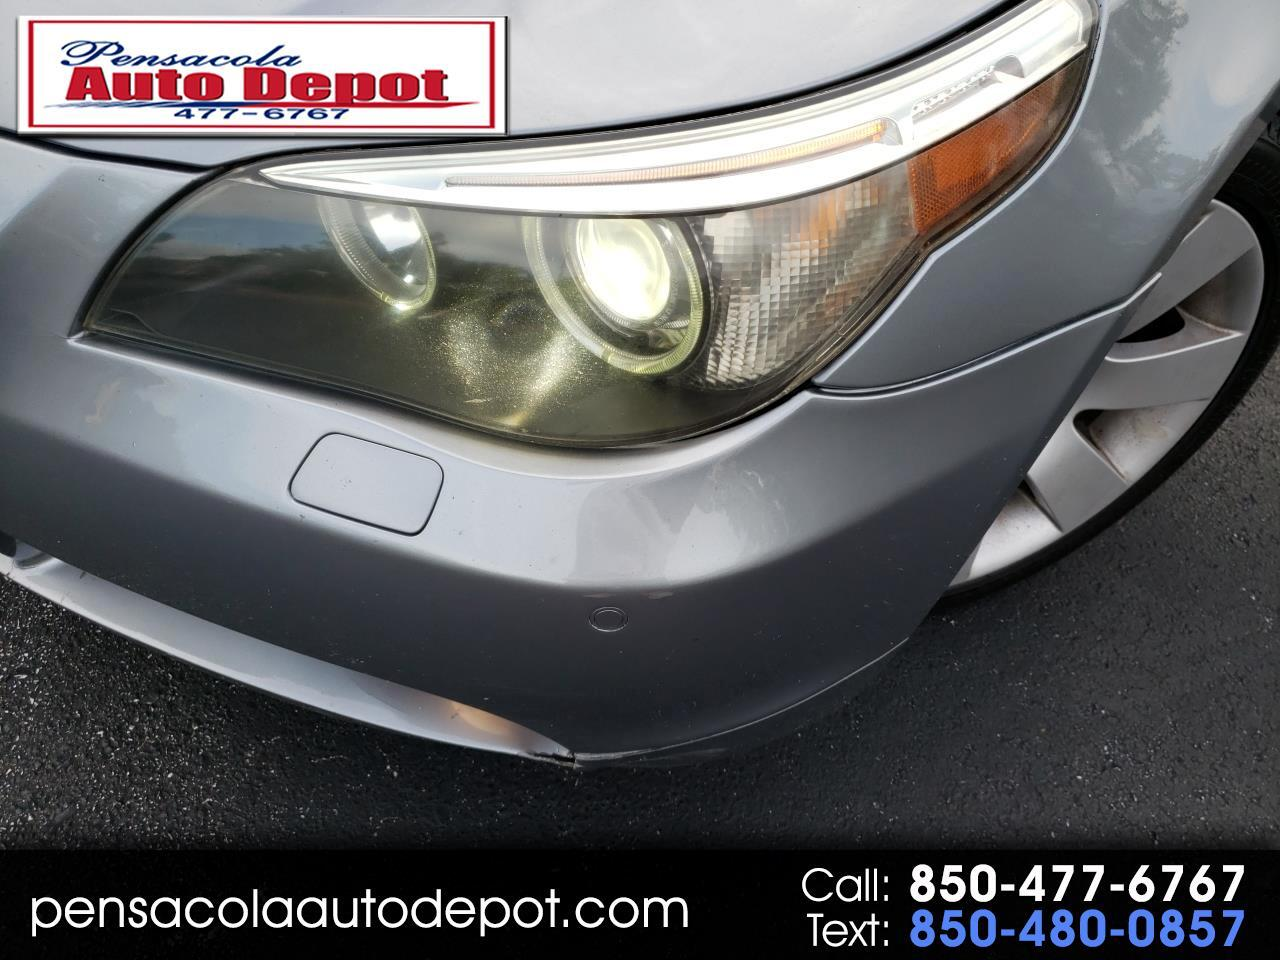 Used Cars Pensacola >> Used Cars For Sale Pensacola Auto Depot